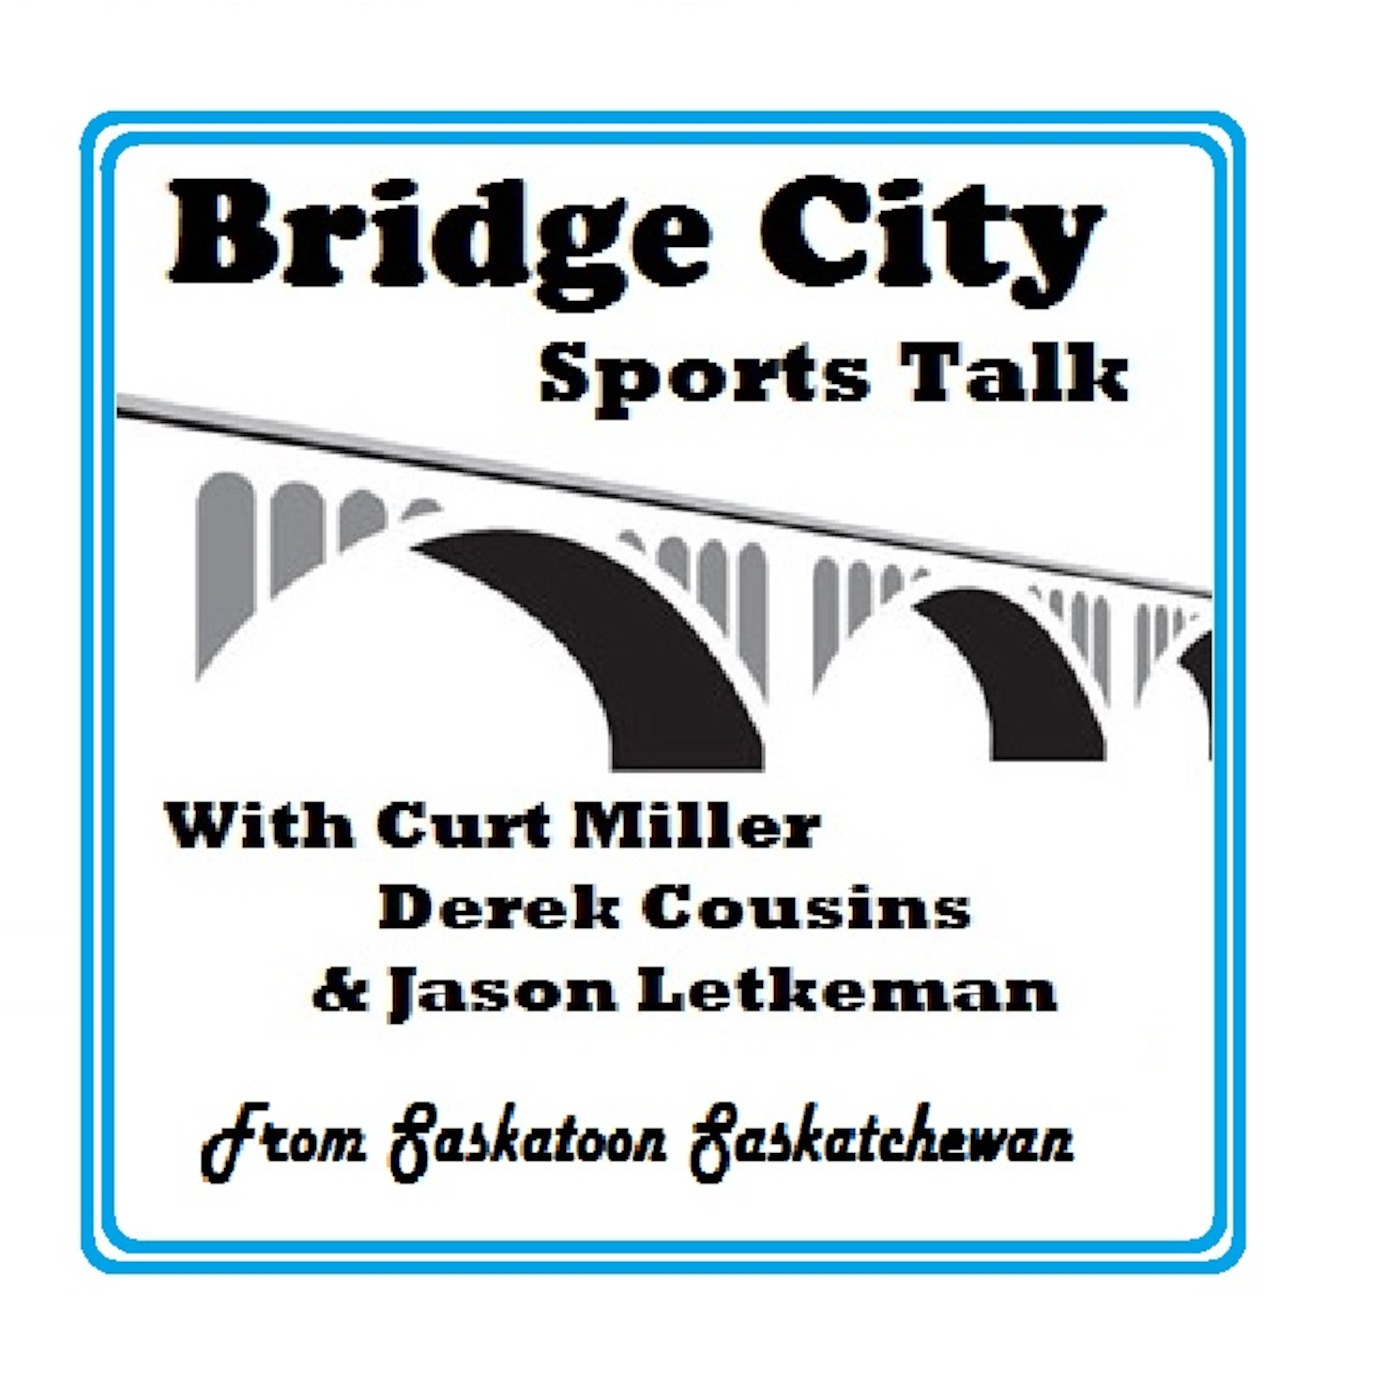 Bridge City Sports Talk